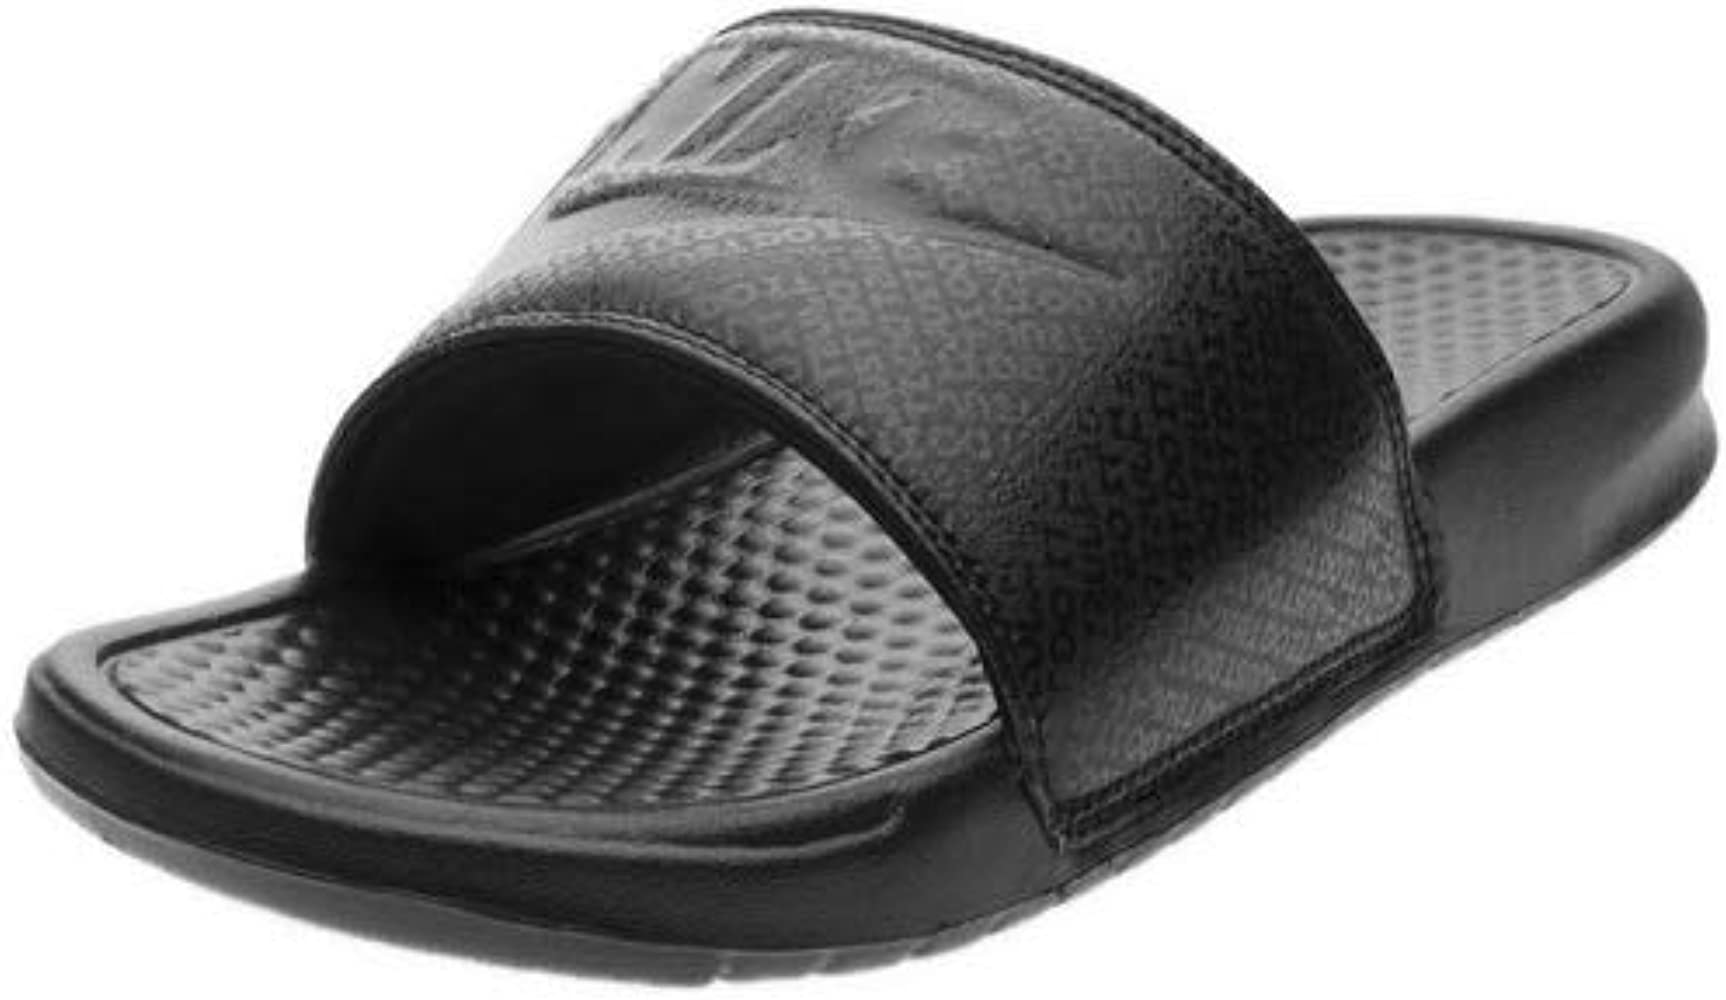 más nuevo mejor calificado estilo atractivo envío gratis Nike Men's Benassi Just Do It Athletic Sandal, Black, 7 UK (41 EU ...